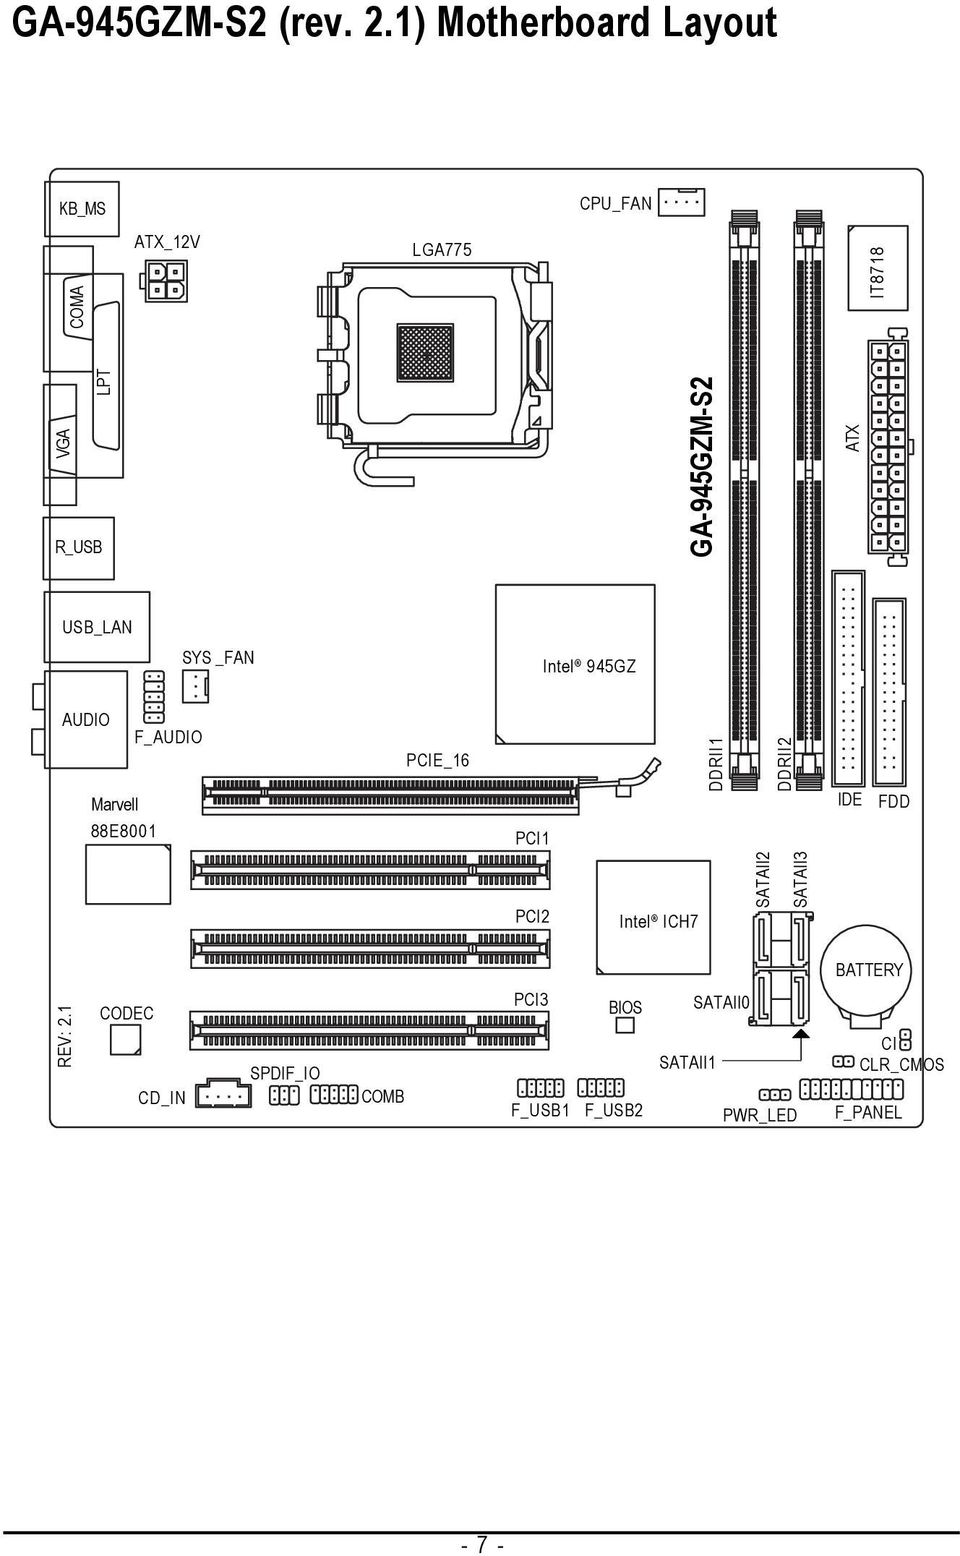 ATX USB_LAN SYS _FAN Intel 945GZ AUDIO F_AUDIO Marvell 88E8001 PCIE_16 PCI1 DDRII1 DDRII2